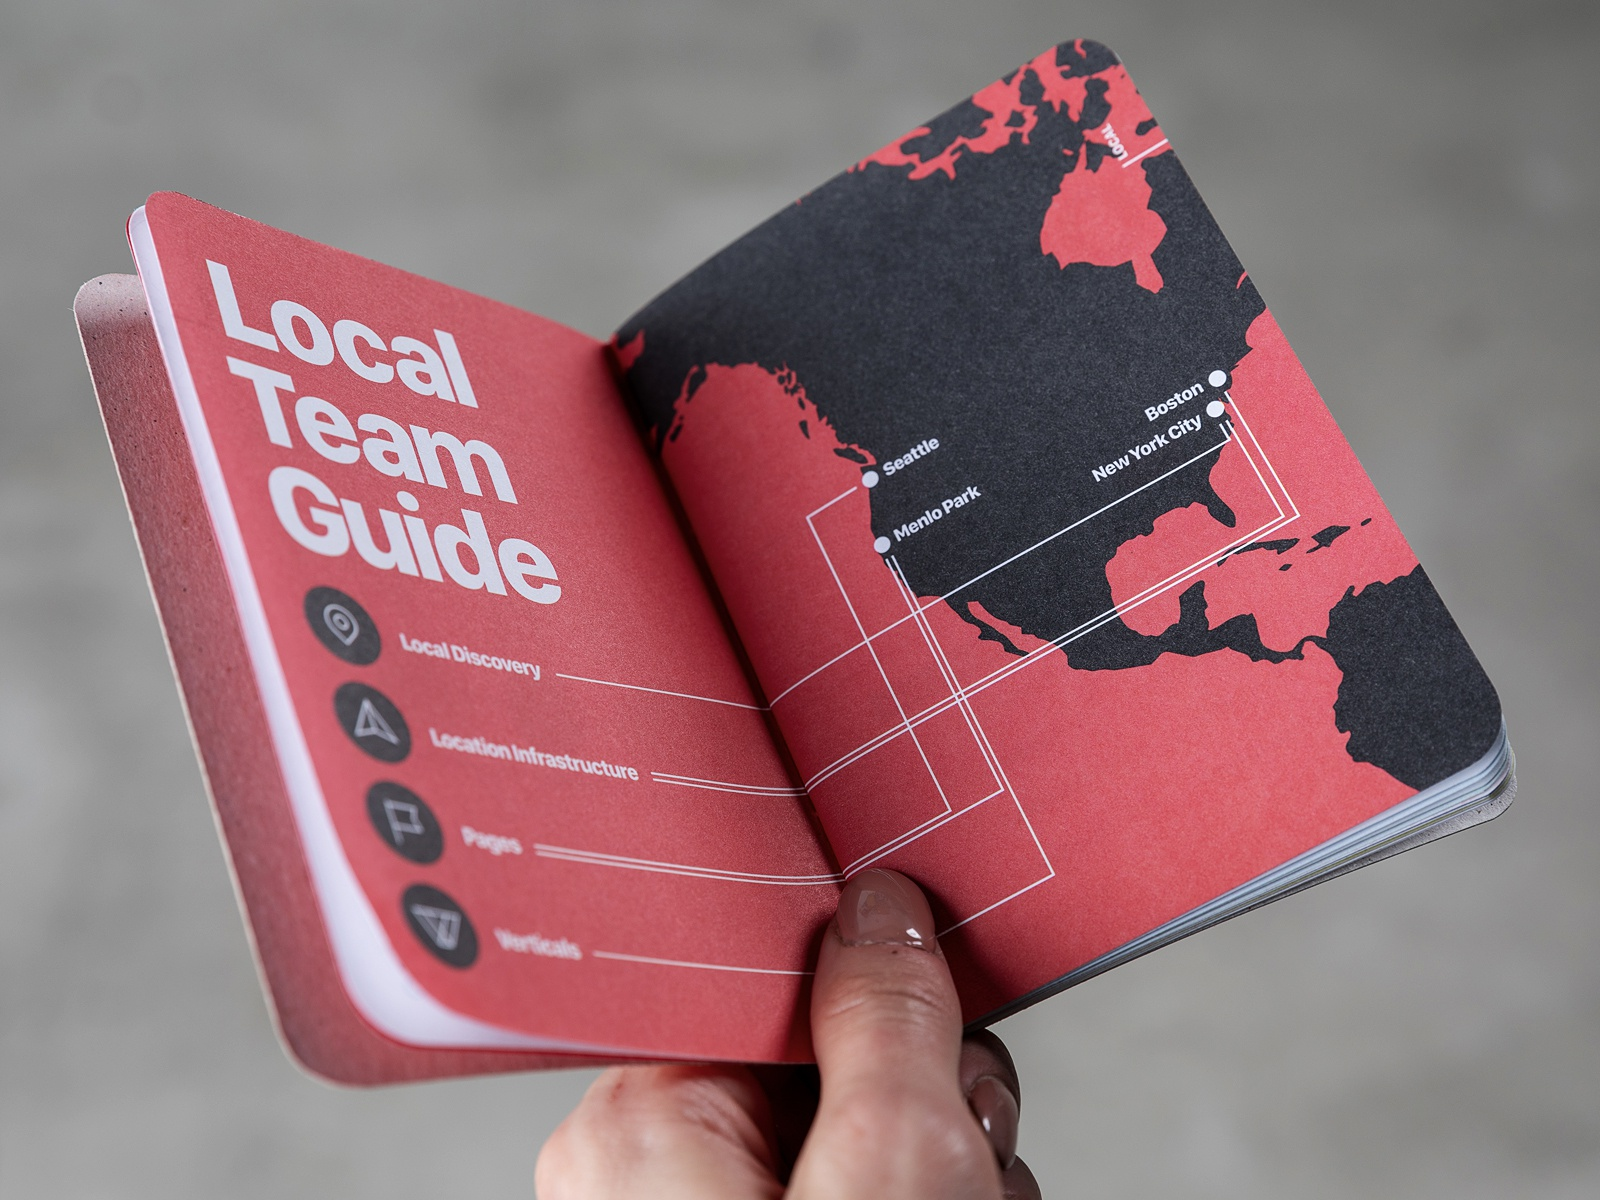 Localteambooklet.dribbble